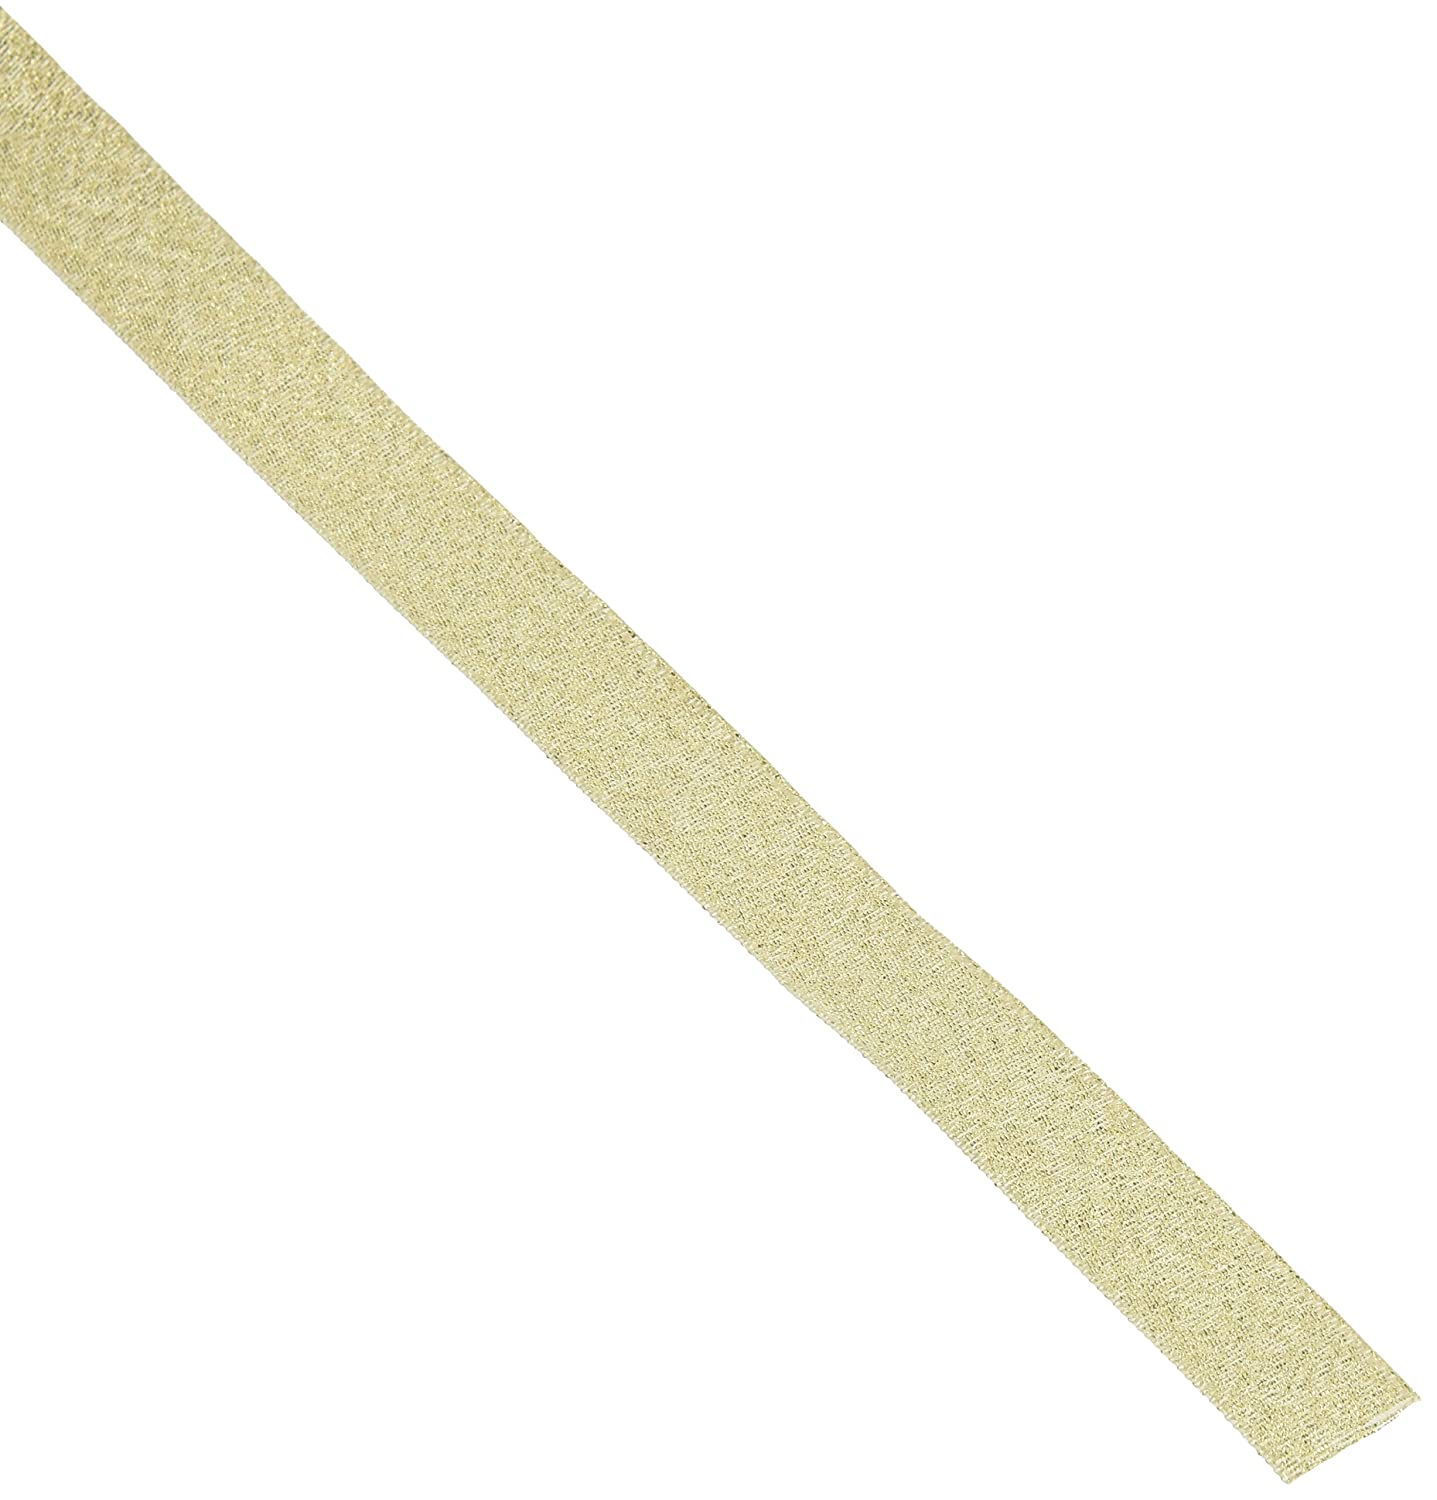 Offray 5/8-Inch Wide Luxe Ribbon, 10-Yard, Gold Dust